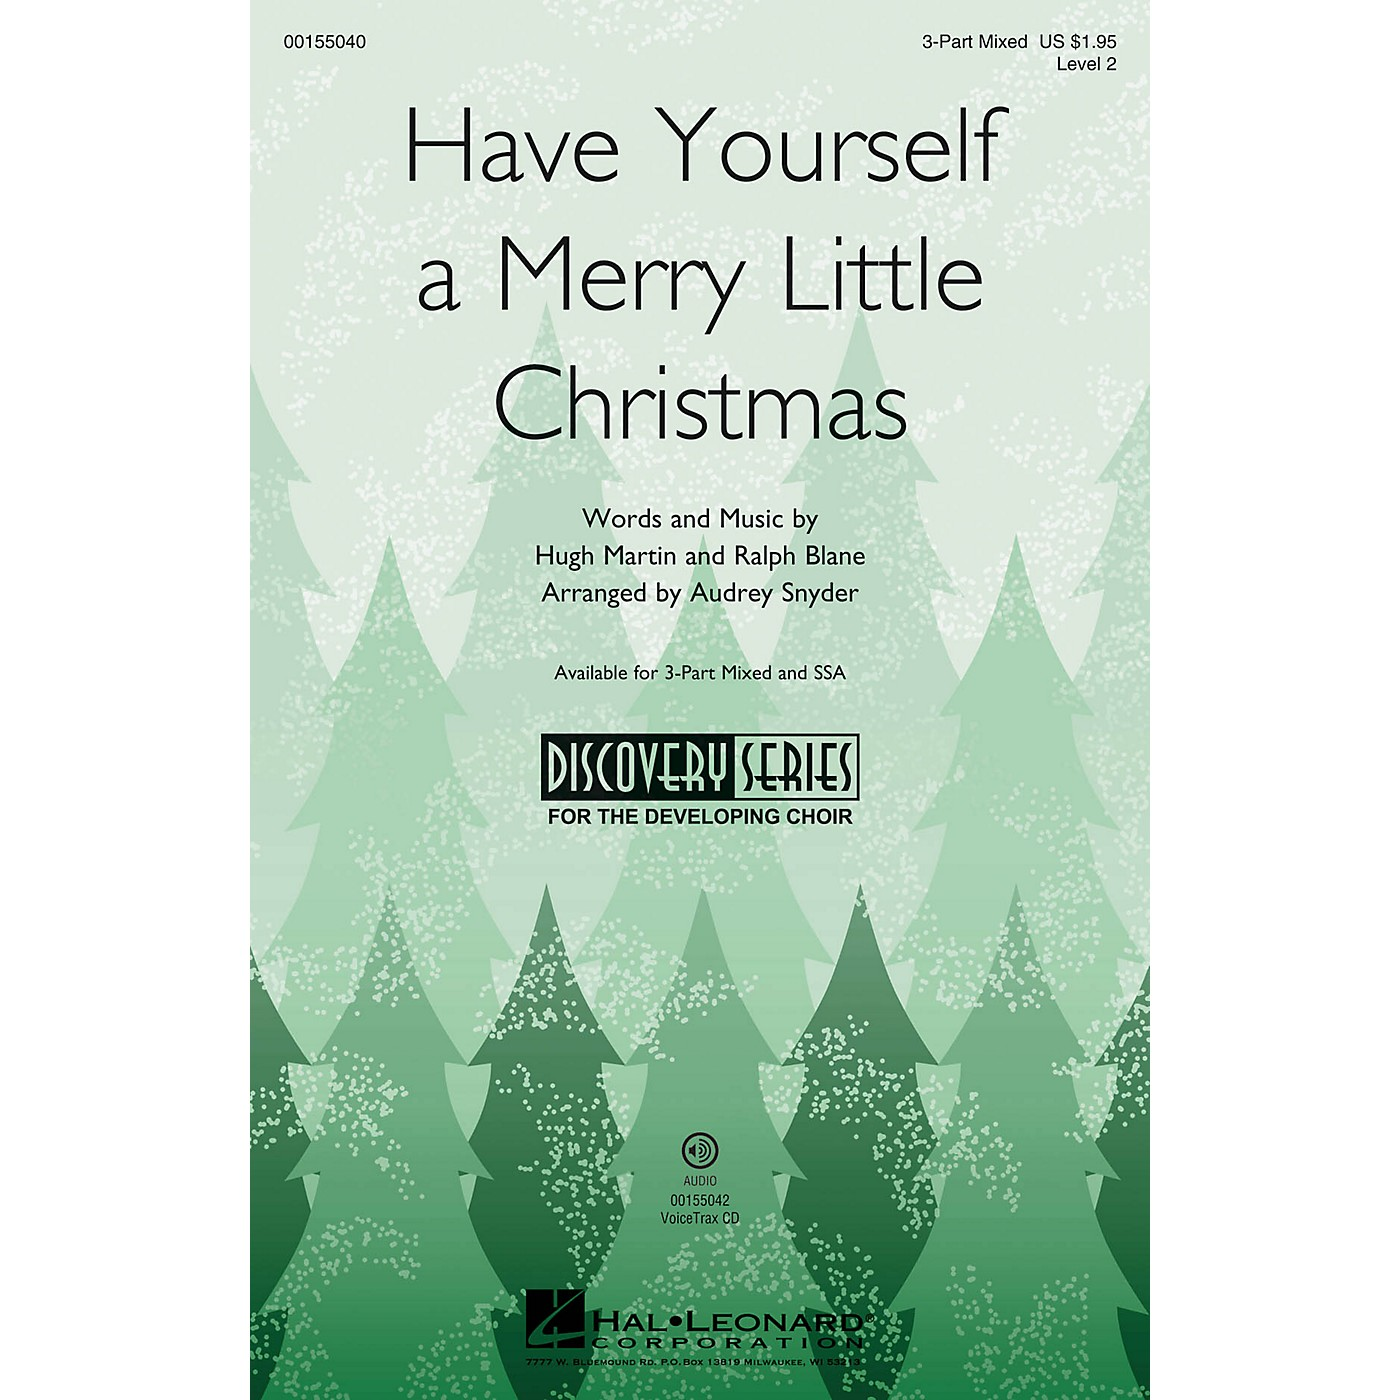 Hal Leonard Have Yourself a Merry Little Christmas (Discovery Level 2) VoiceTrax CD Arranged by Audrey Snyder thumbnail